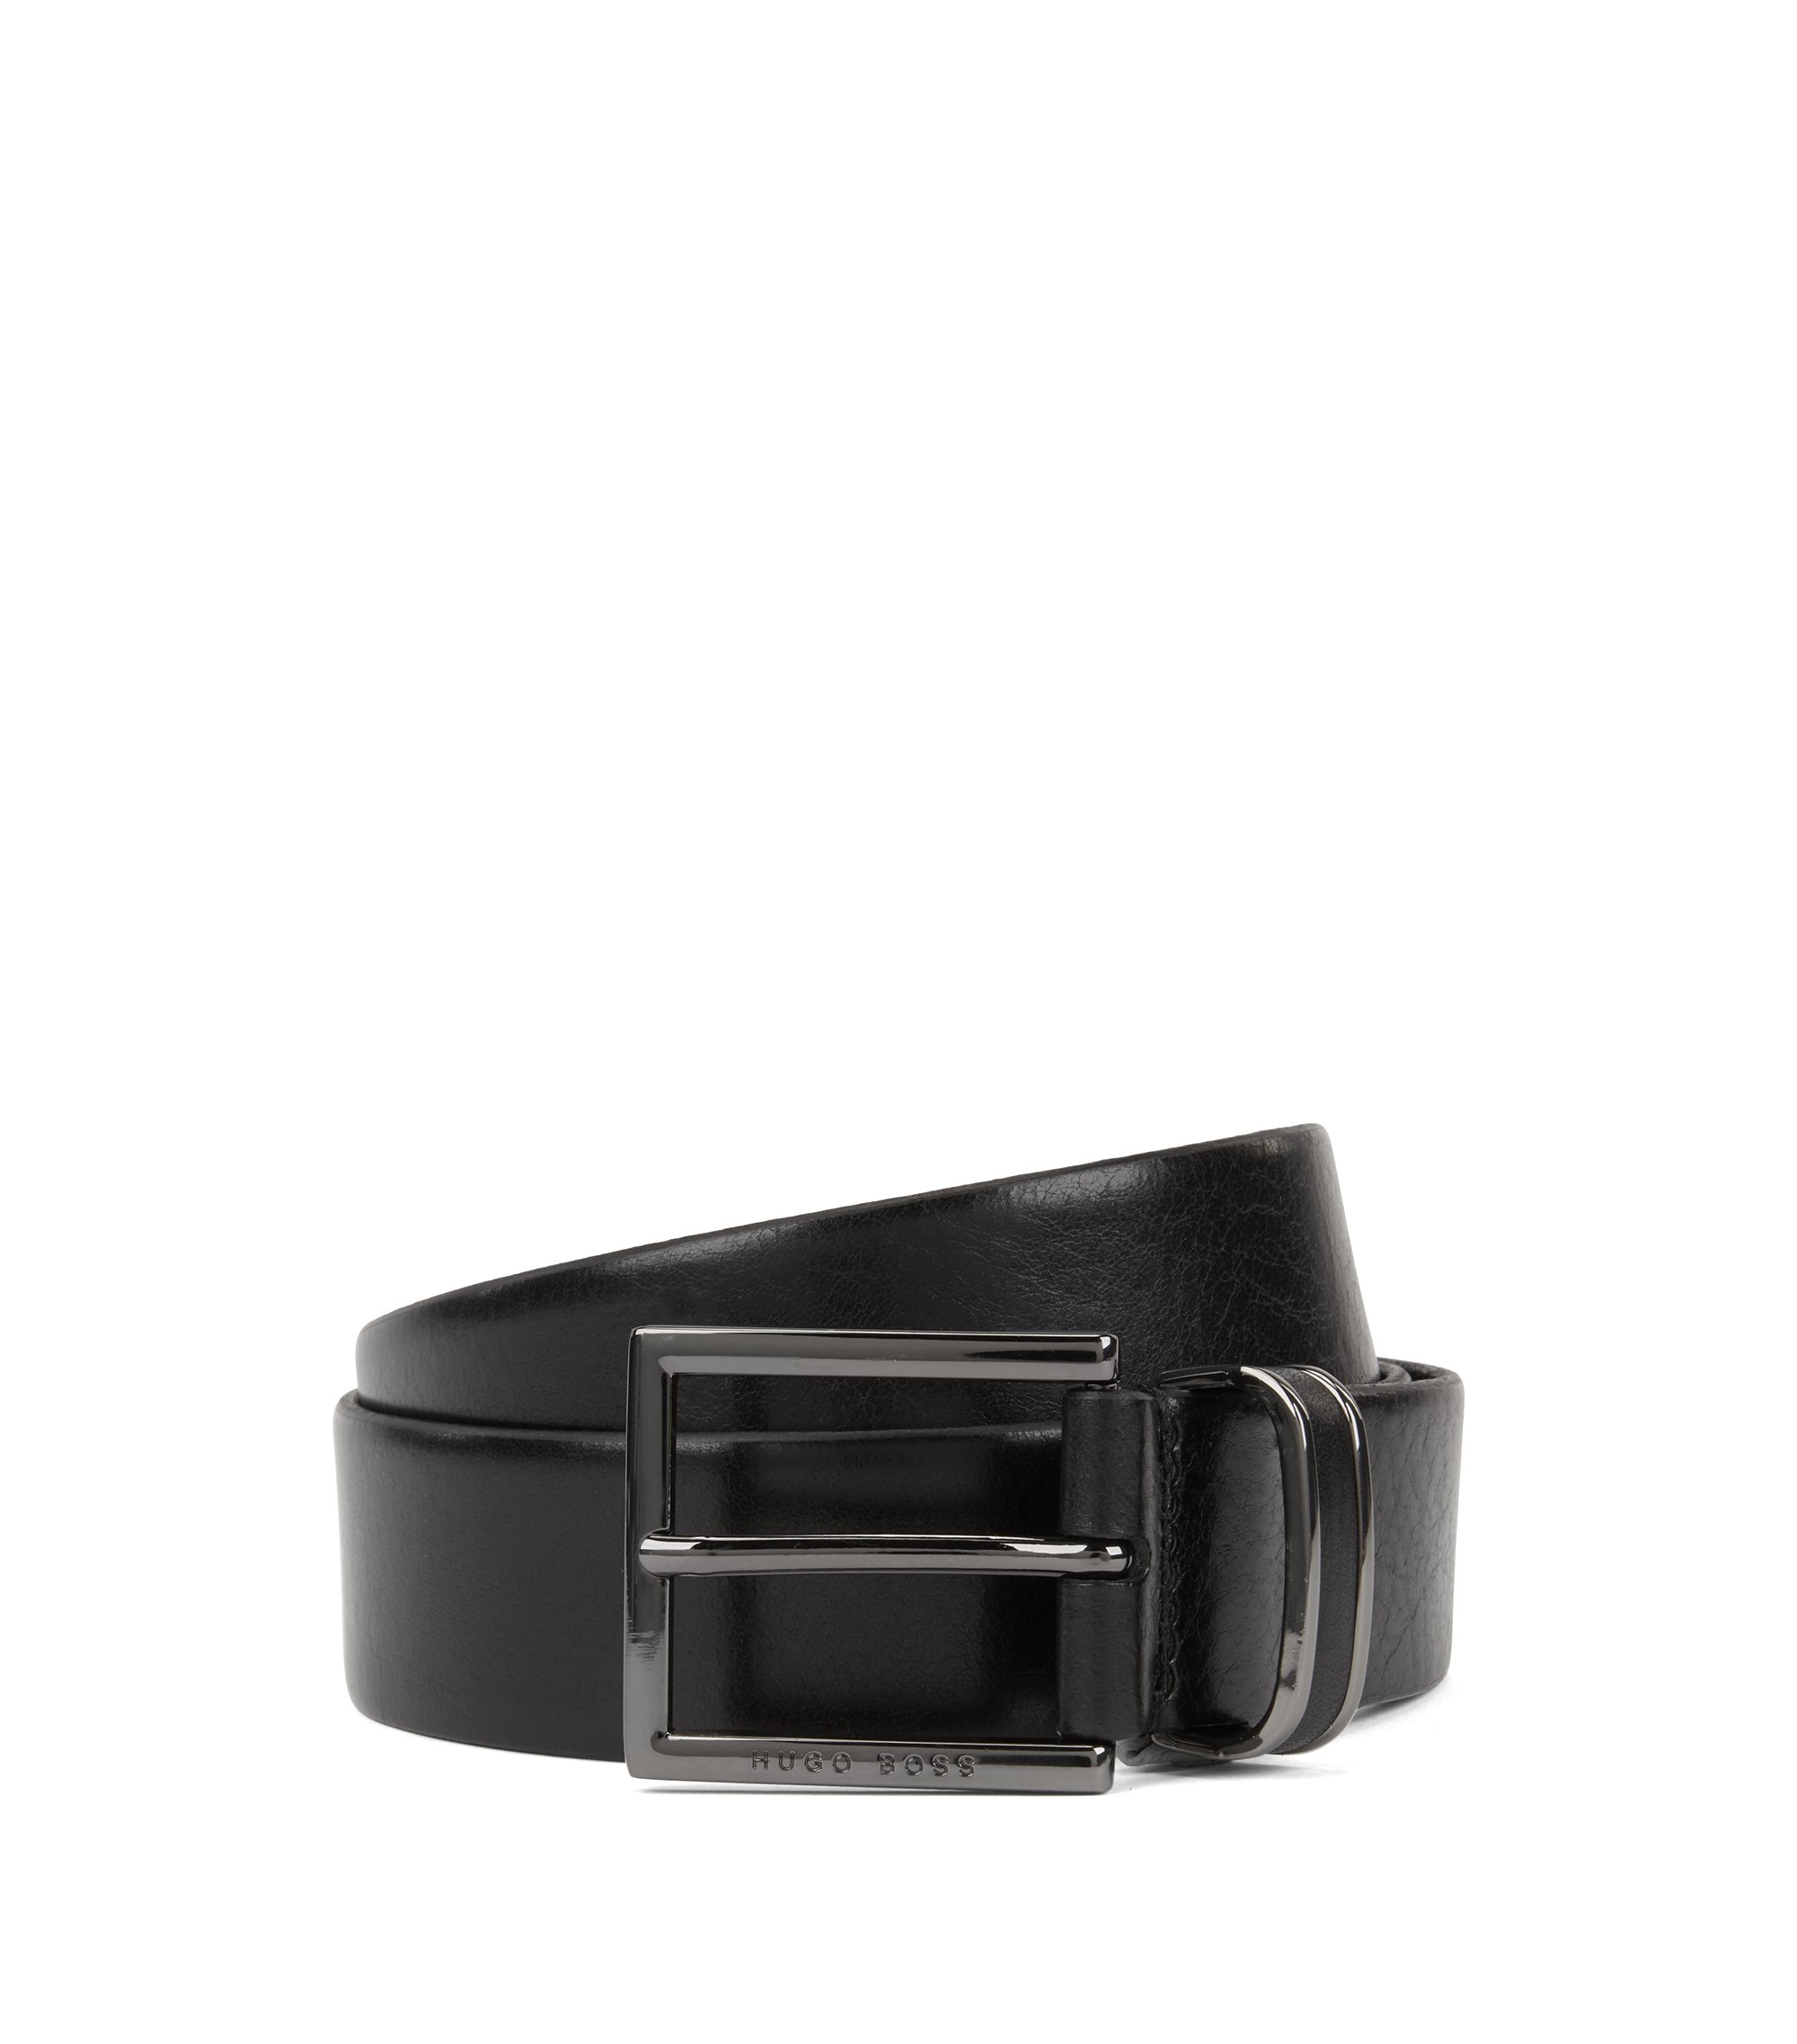 Belt in smooth leather with polished gunmetal keeper, Black